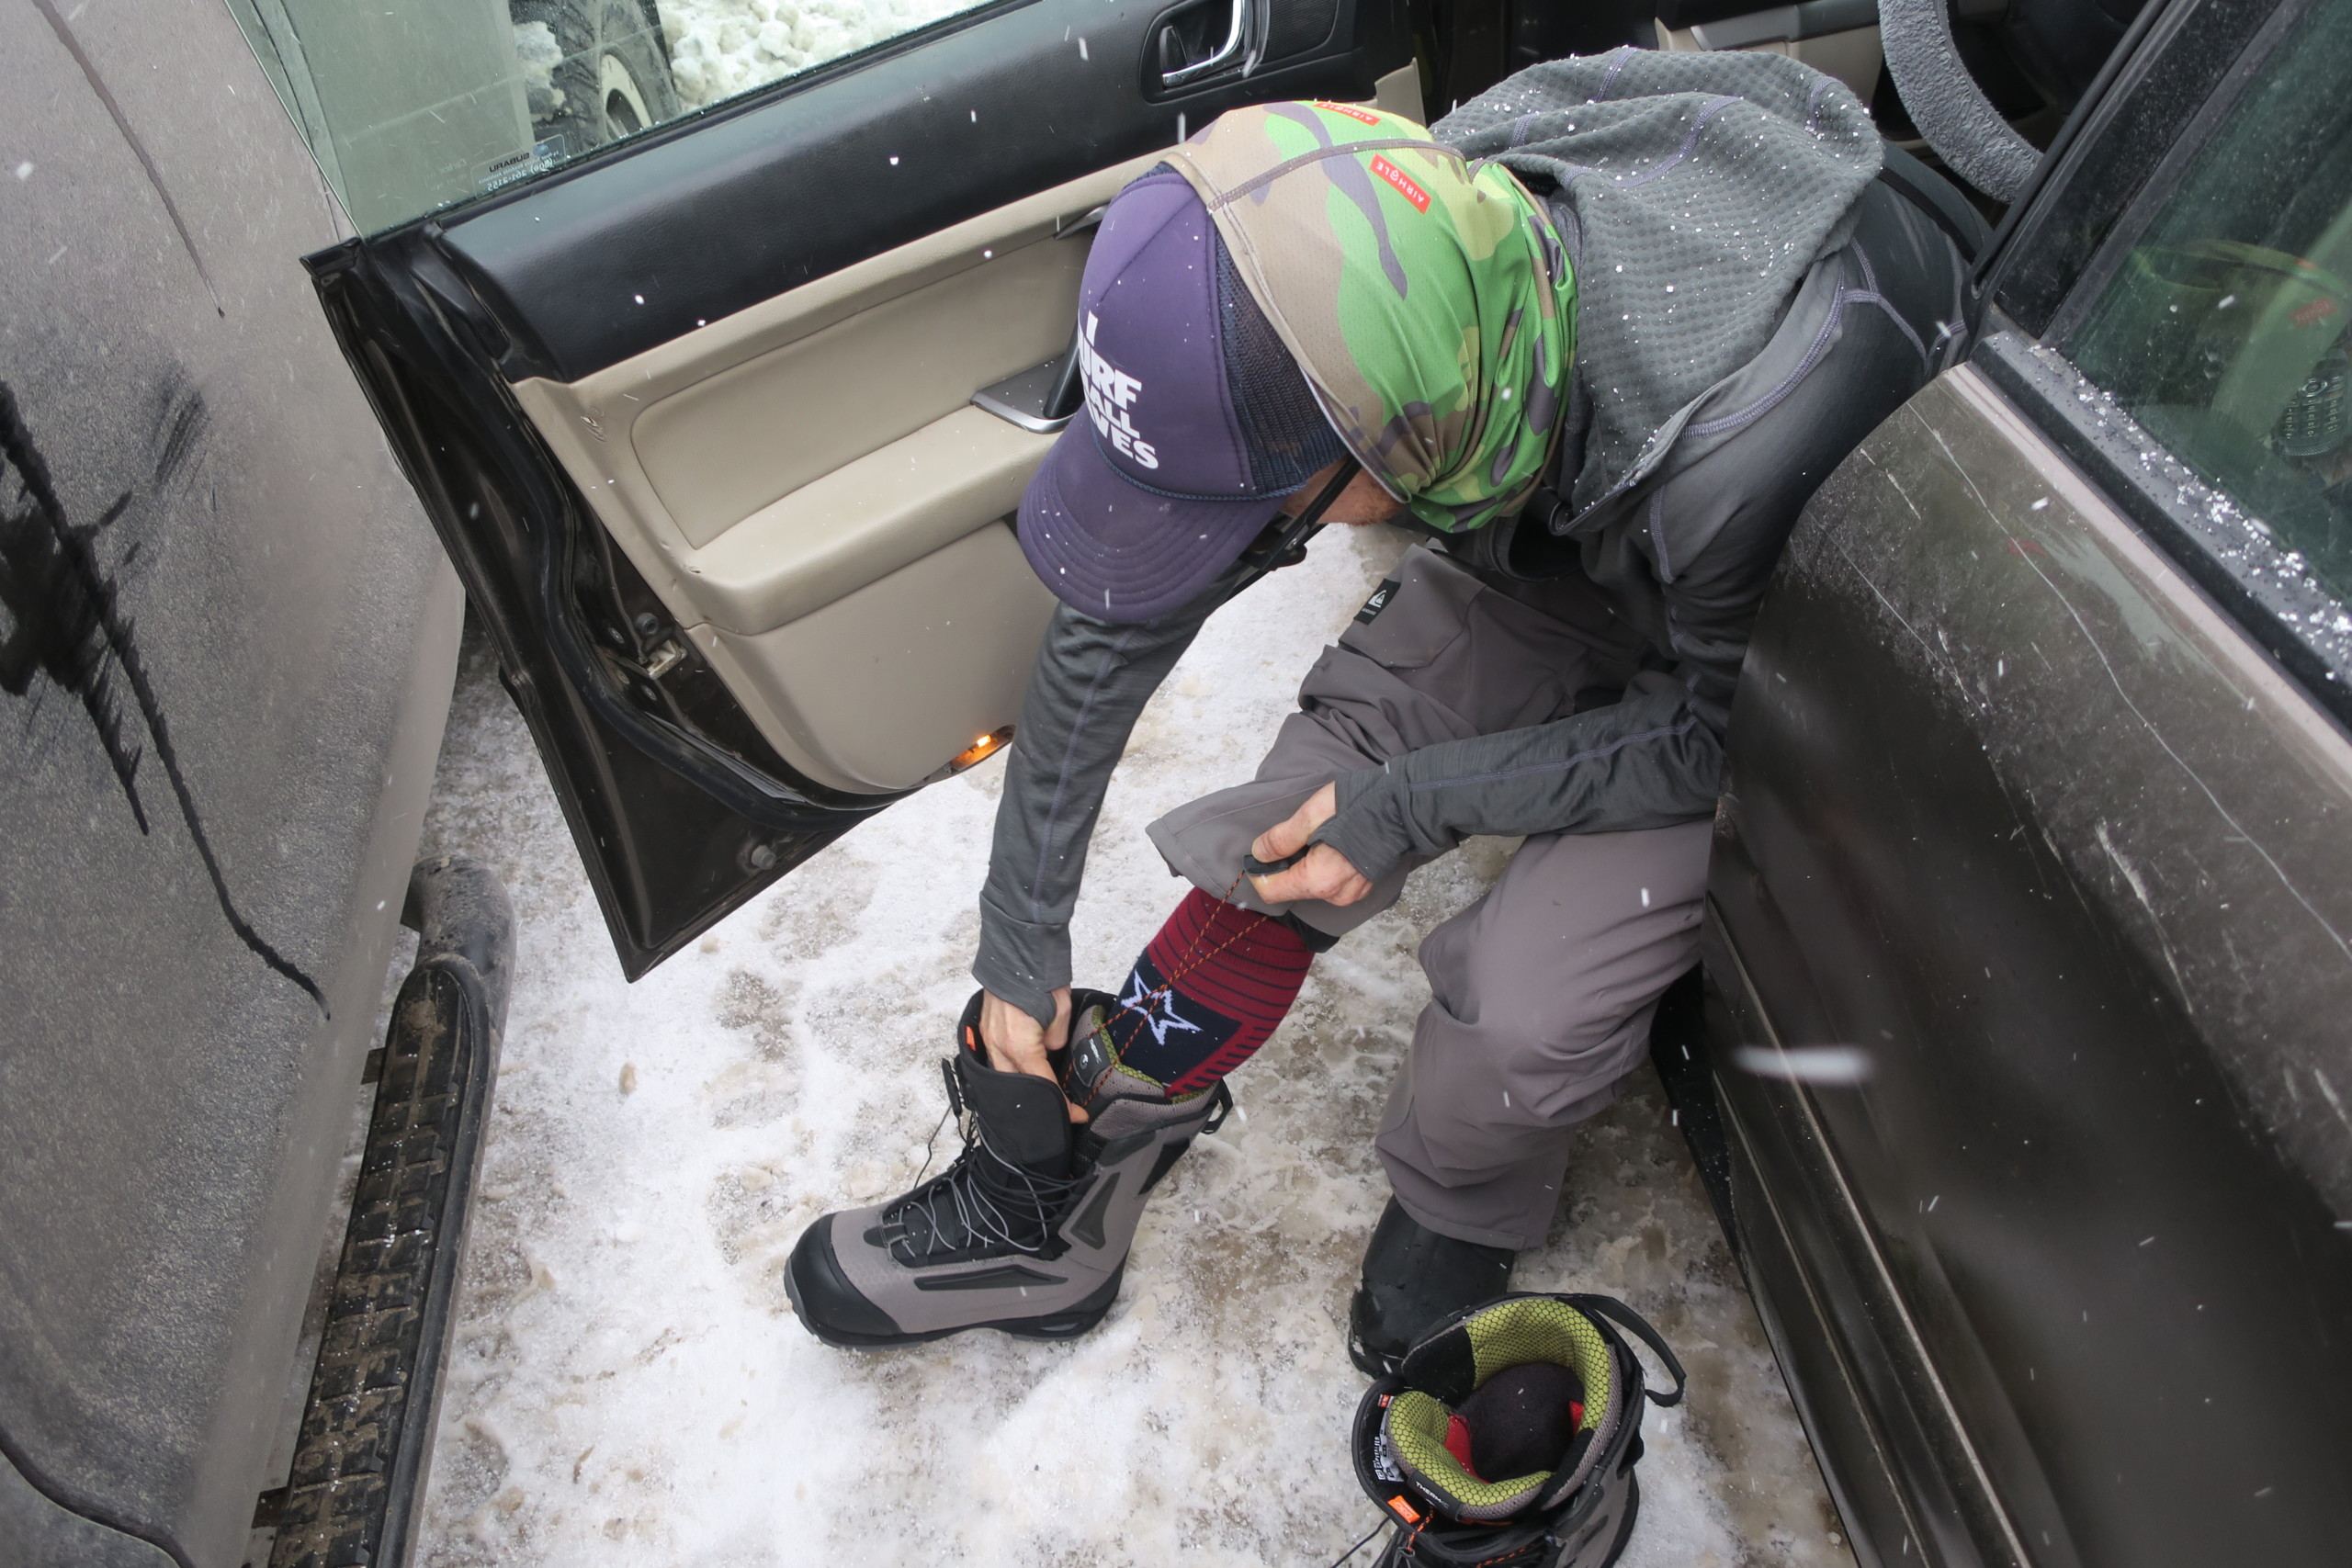 Lacing Snowboard Boots Up